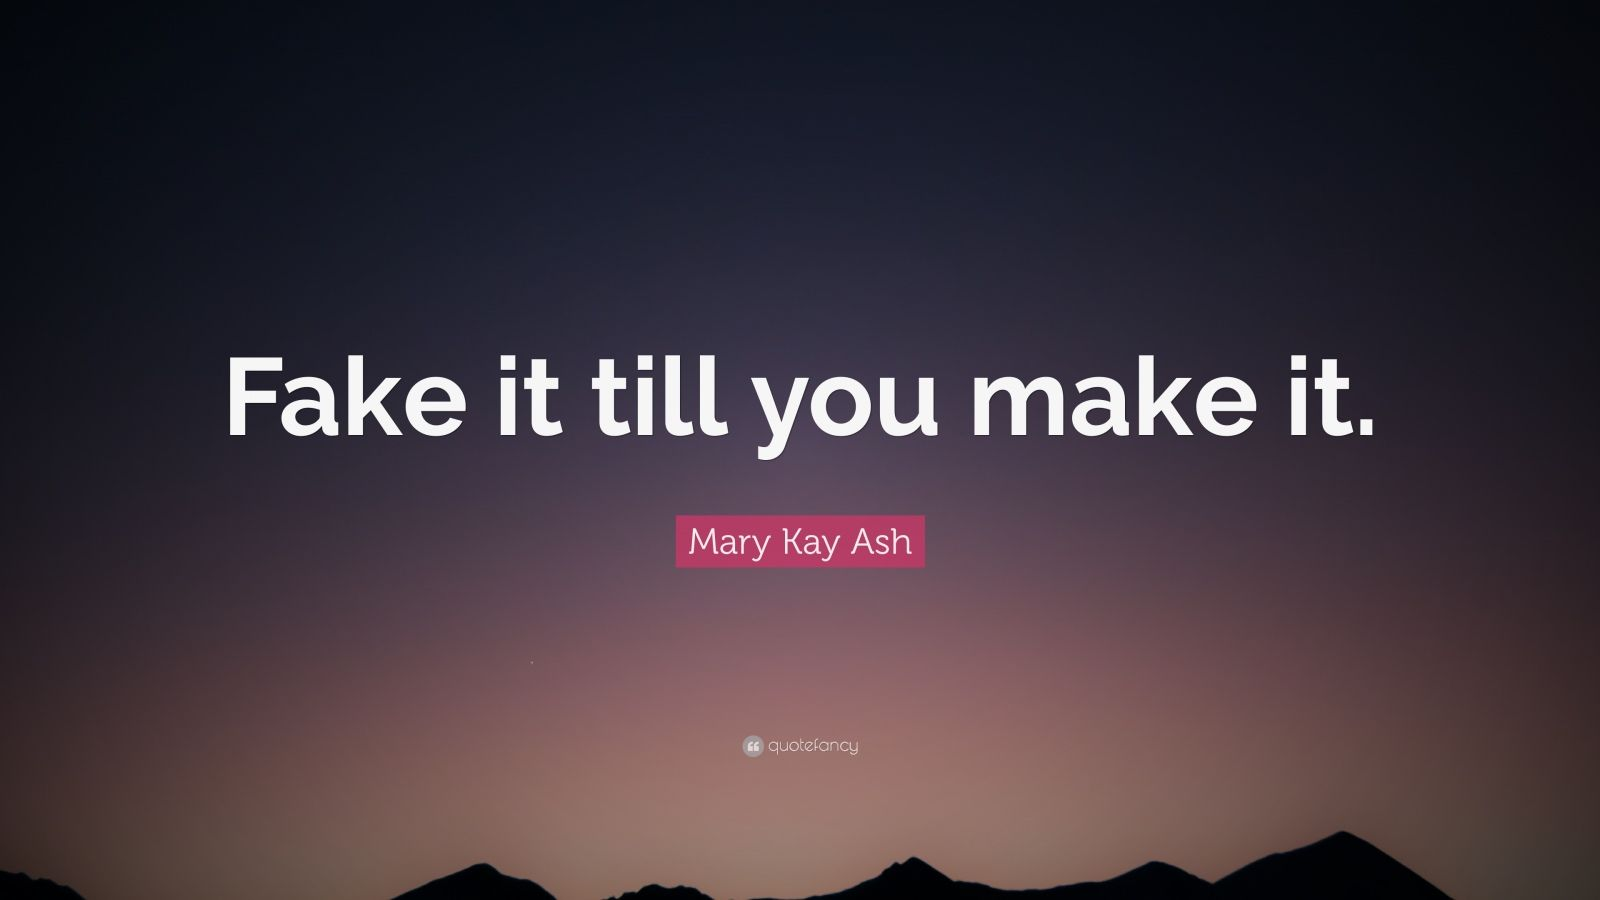 mary kay ash quote: